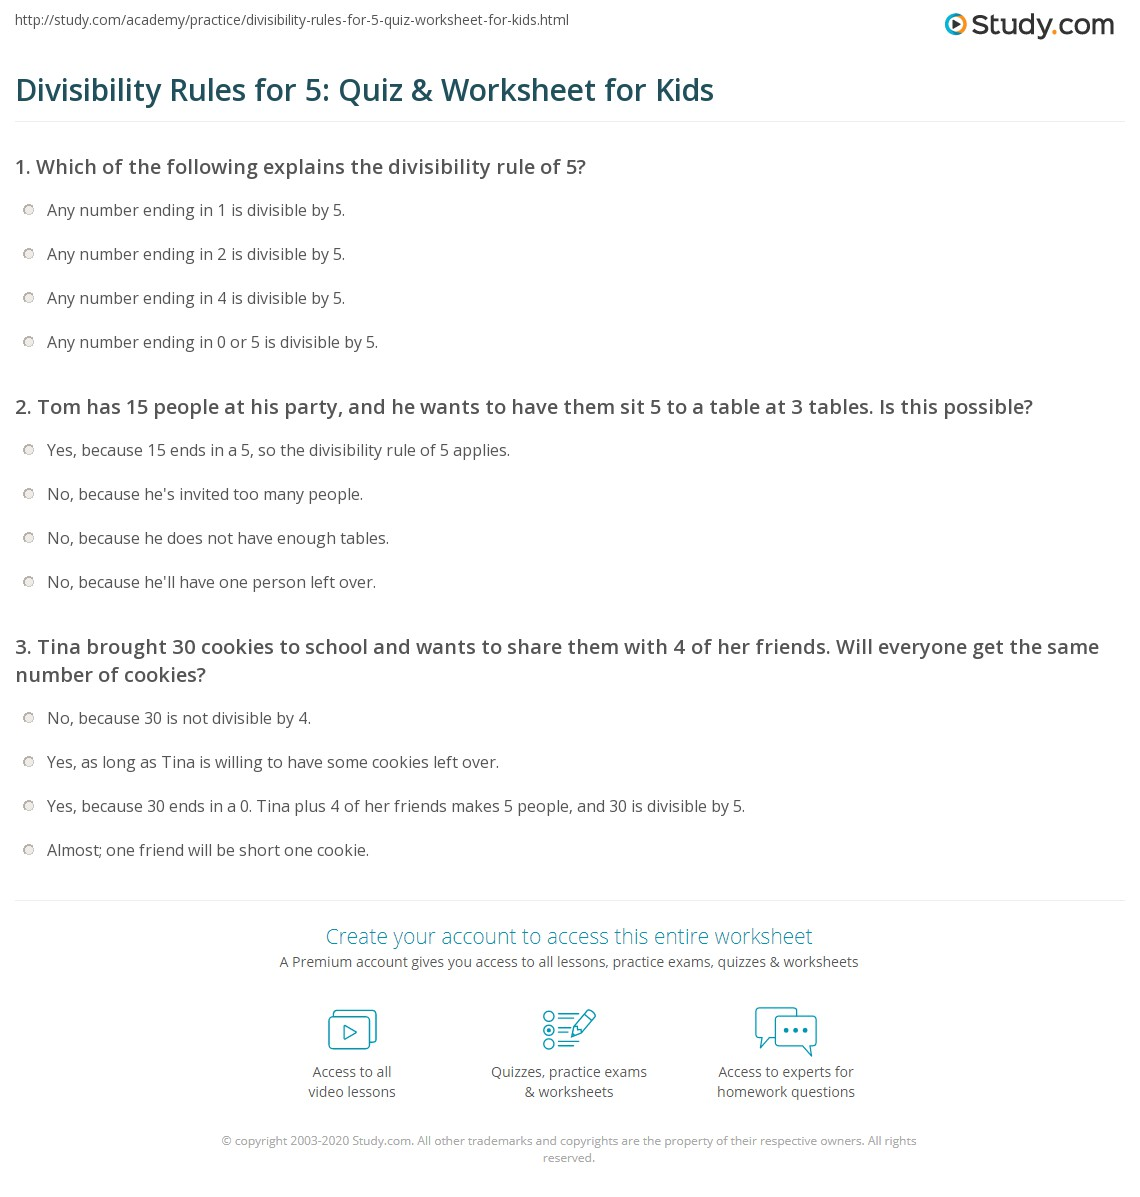 Divisibility Rules for 5 Quiz and Worksheet for Kids – Divisibility Test Worksheet